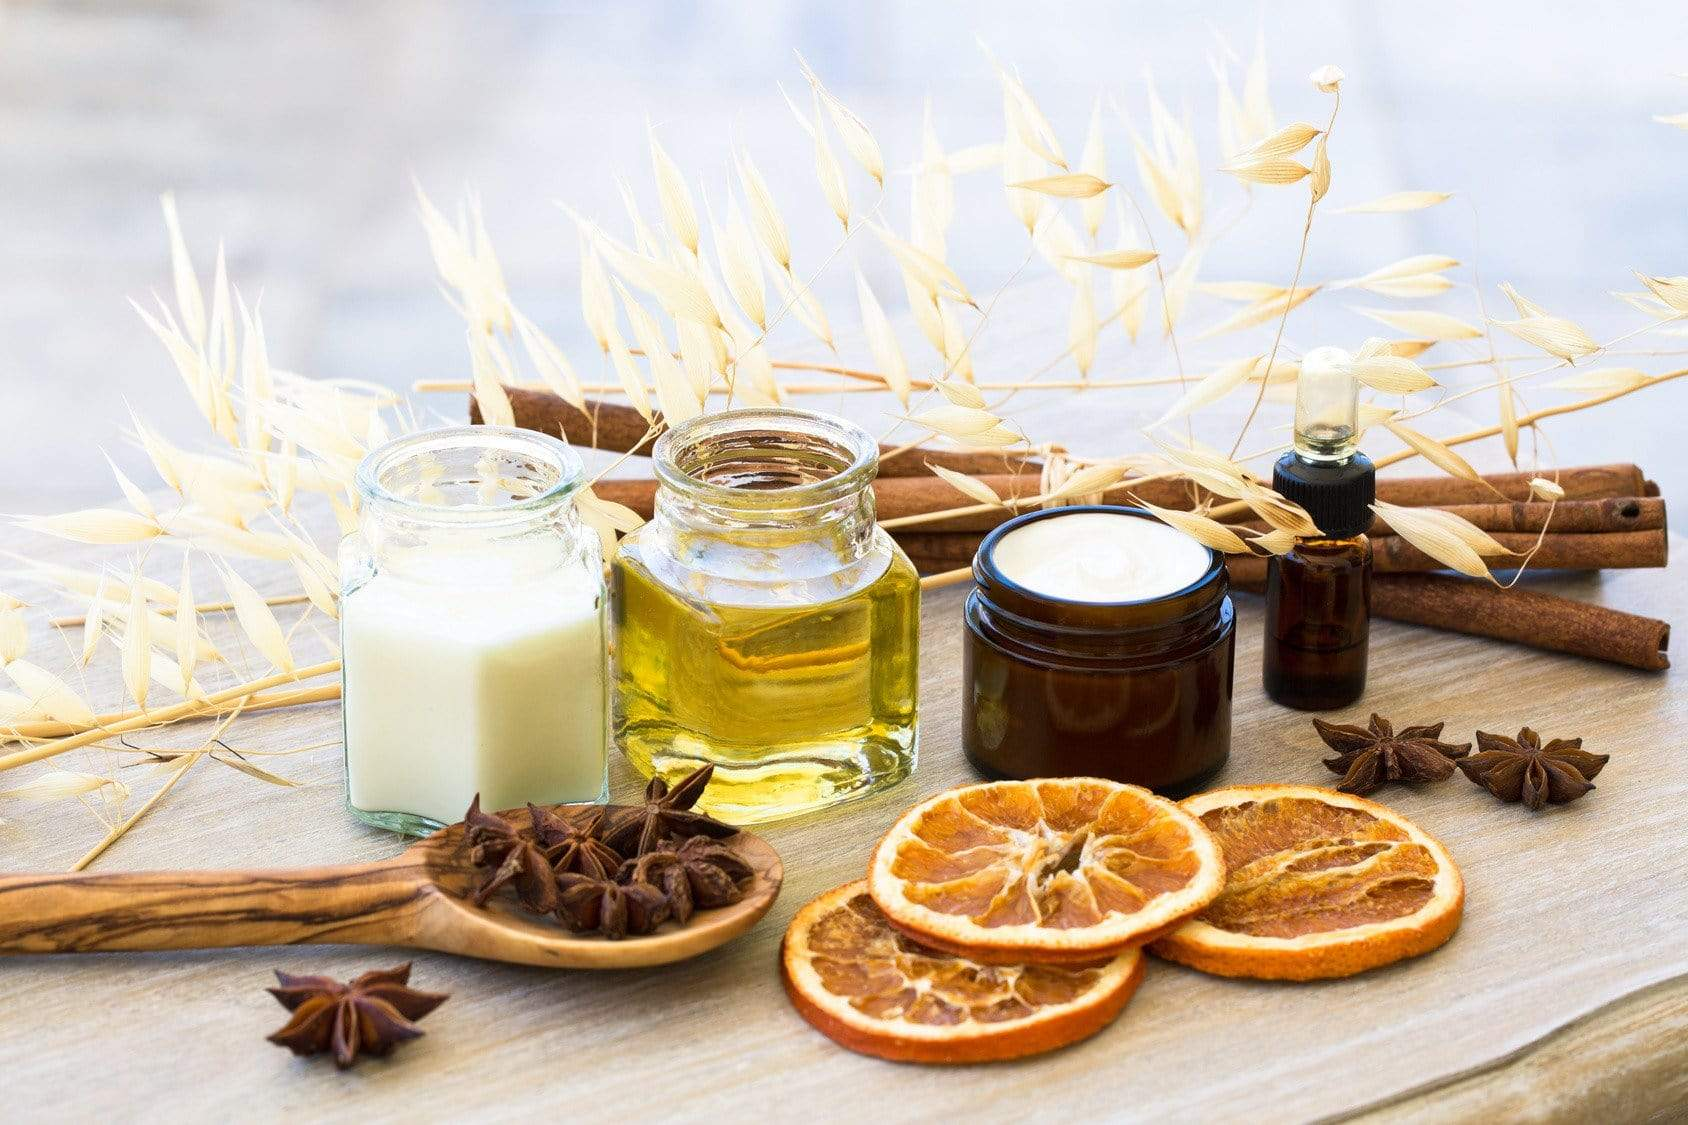 30 Sep 2017 ~ Natural Beauty Product Workshop: Goddess with Essential Oils - Petal and Stem